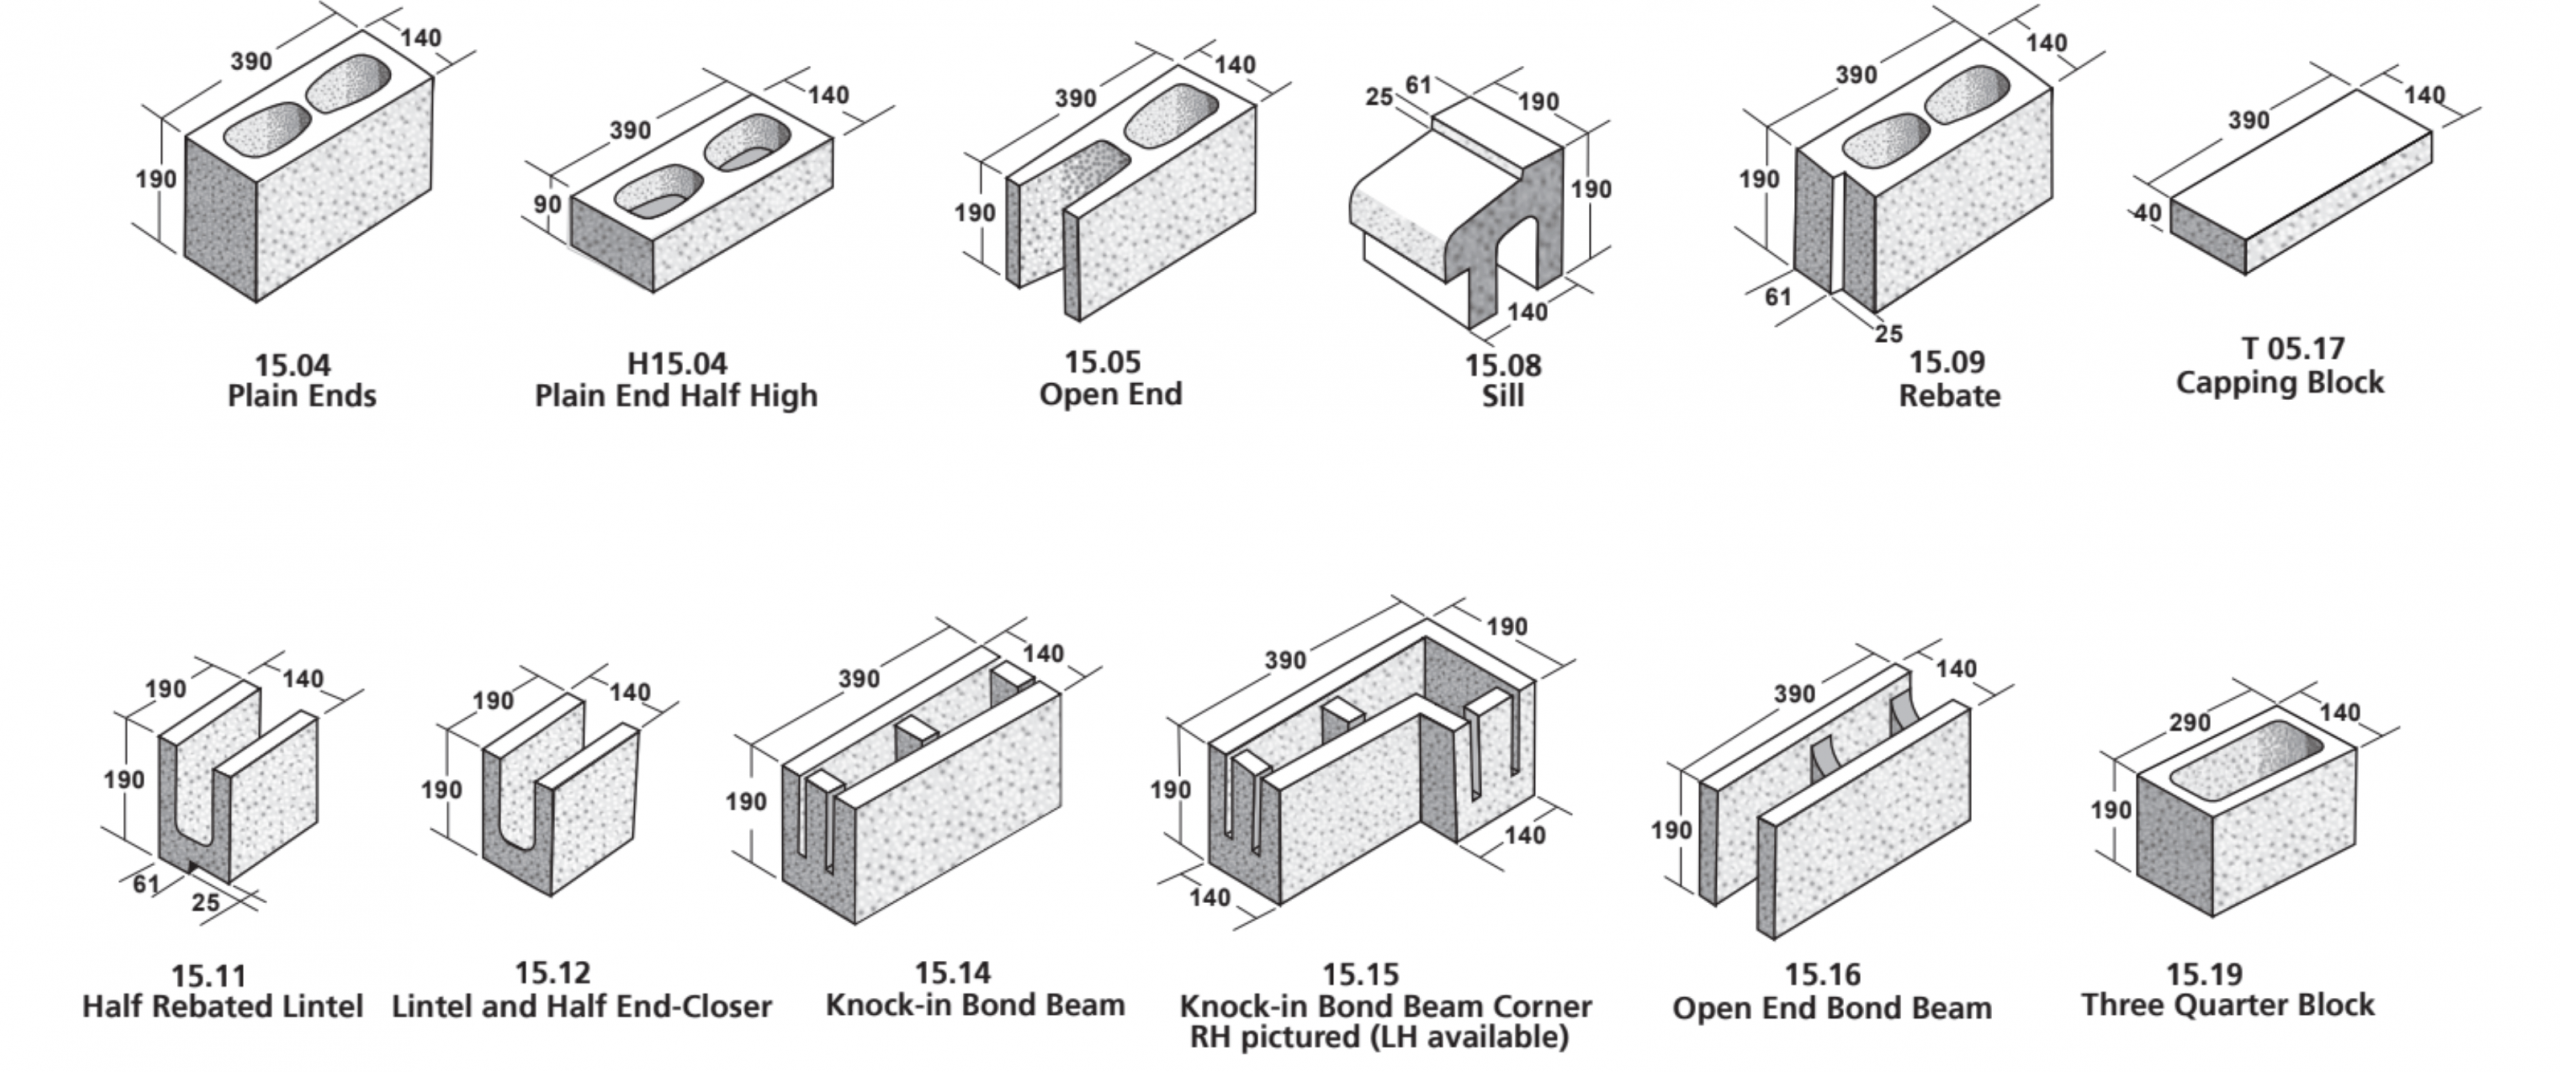 15 Series Masonry Blocks - ViBlock